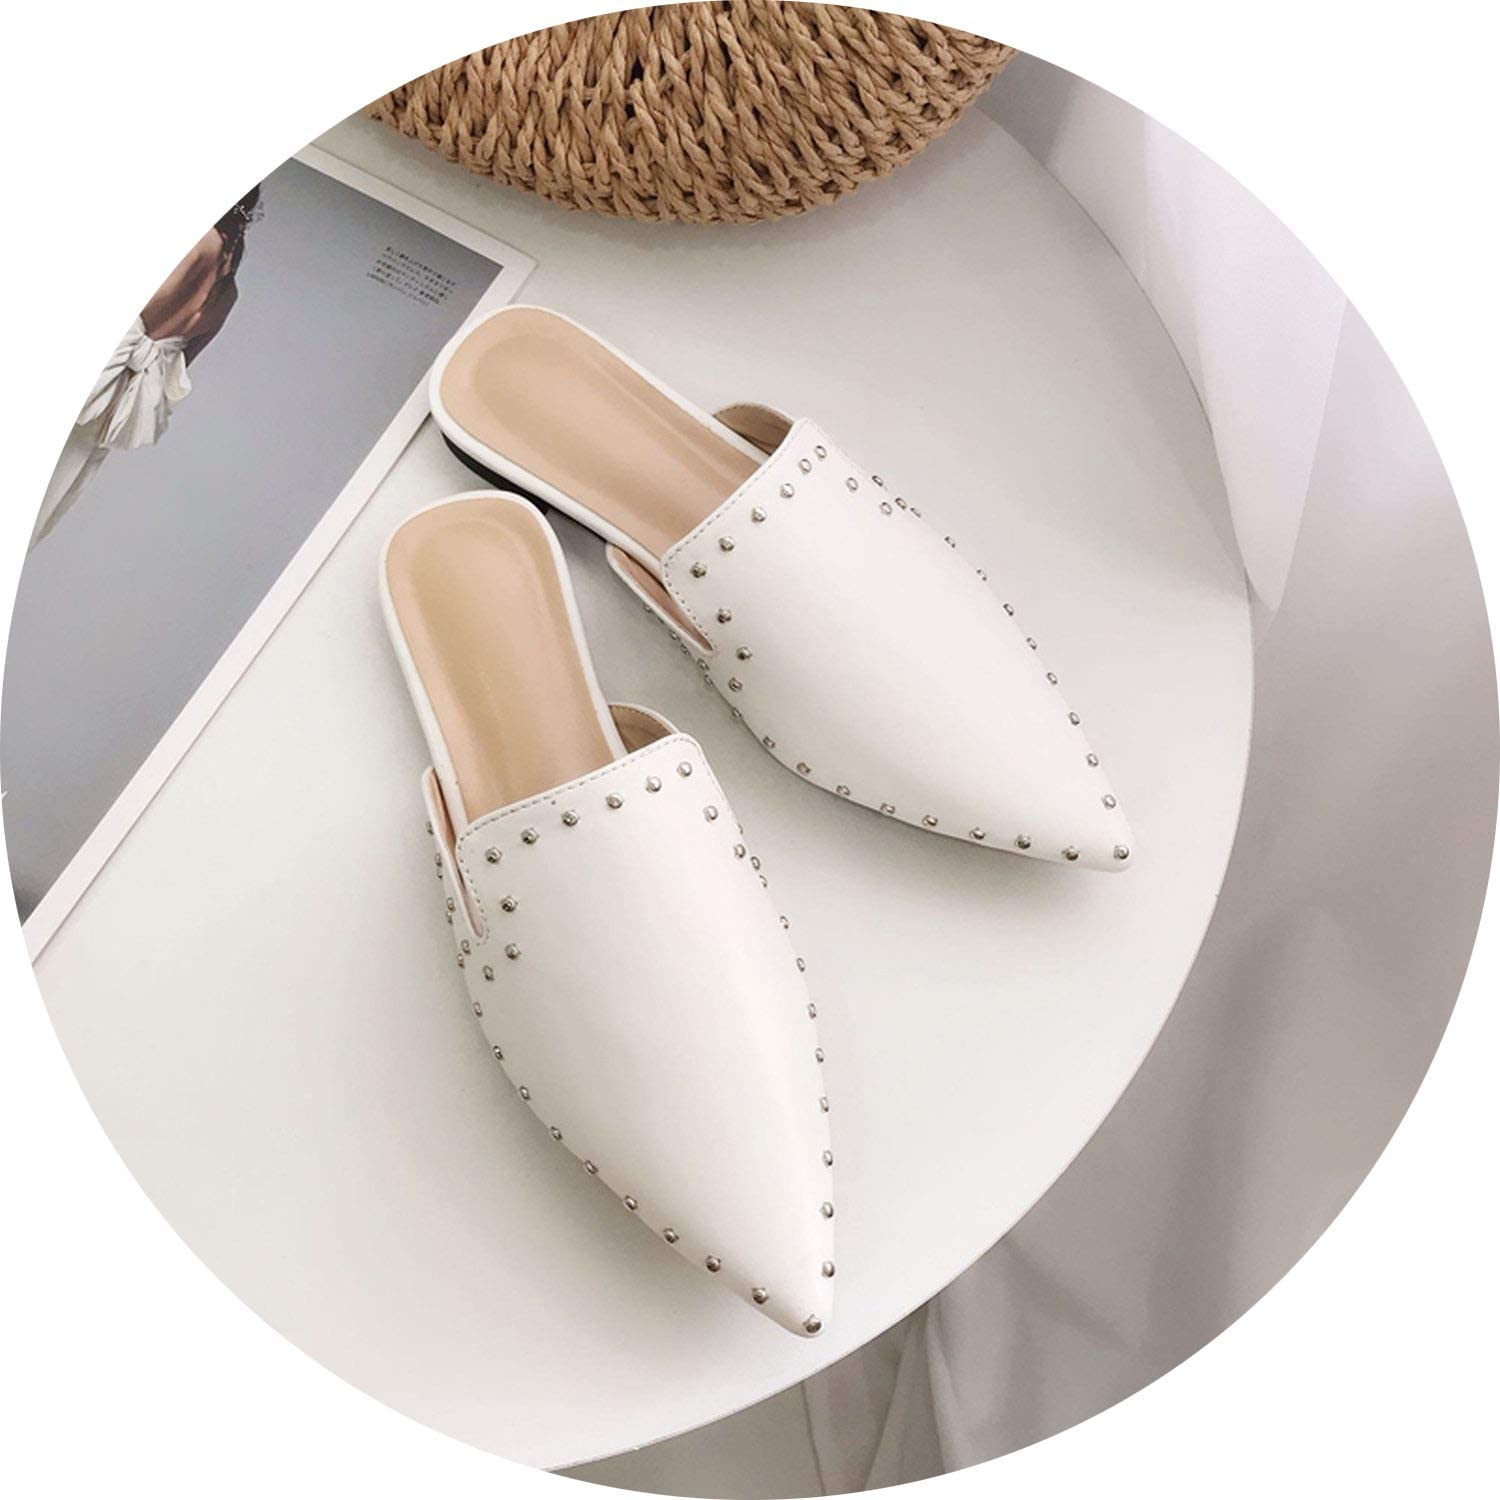 Rivet Design Woman Mules shoes Pointed Toe Female Flat Slippers Ladies Slip On Loafers Leather Pu Summer shoes